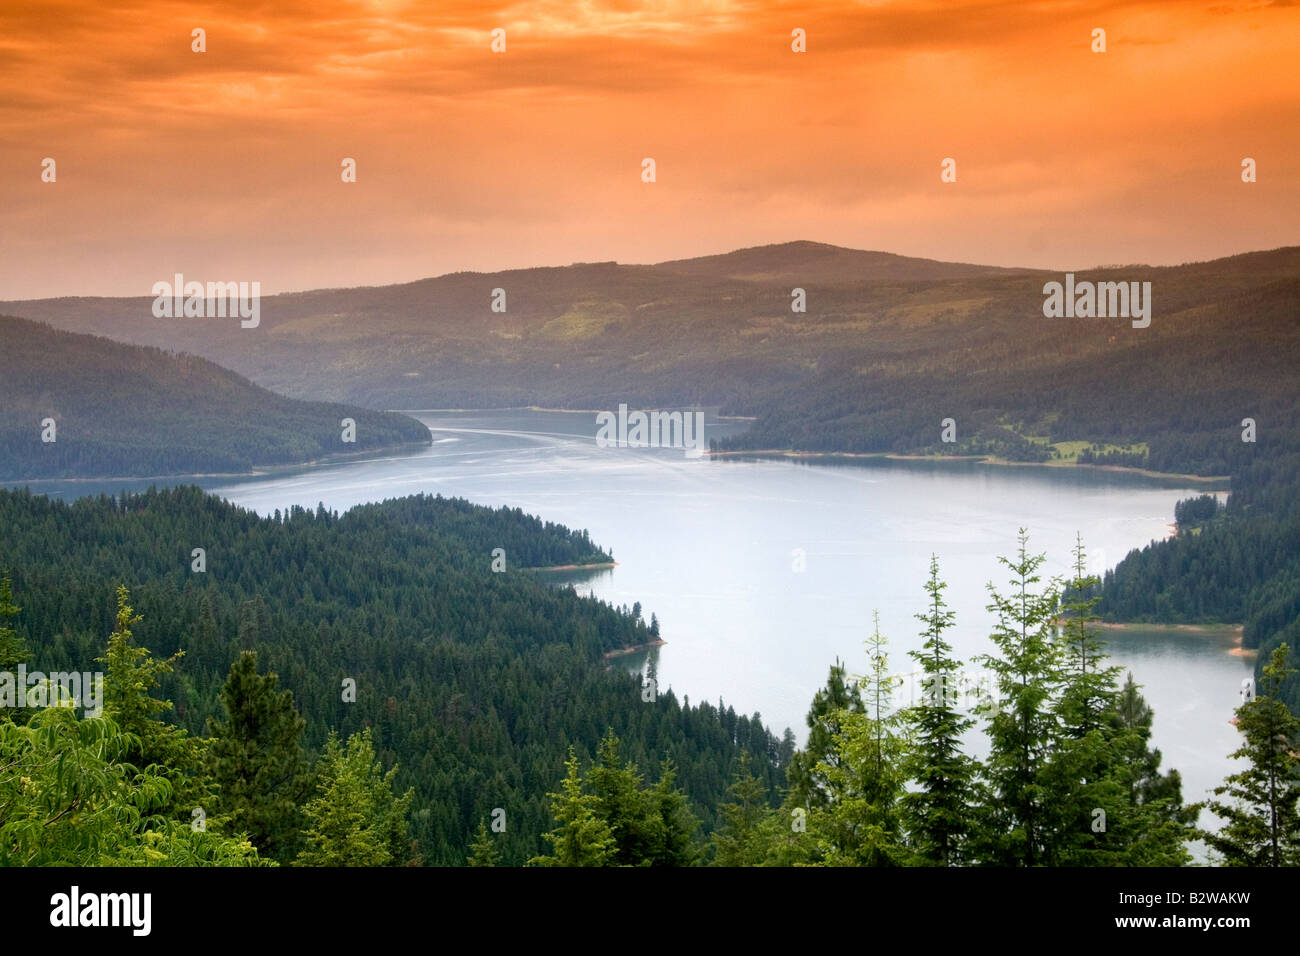 Dworshak Reservoir in Clearwater County Idaho - Stock Image